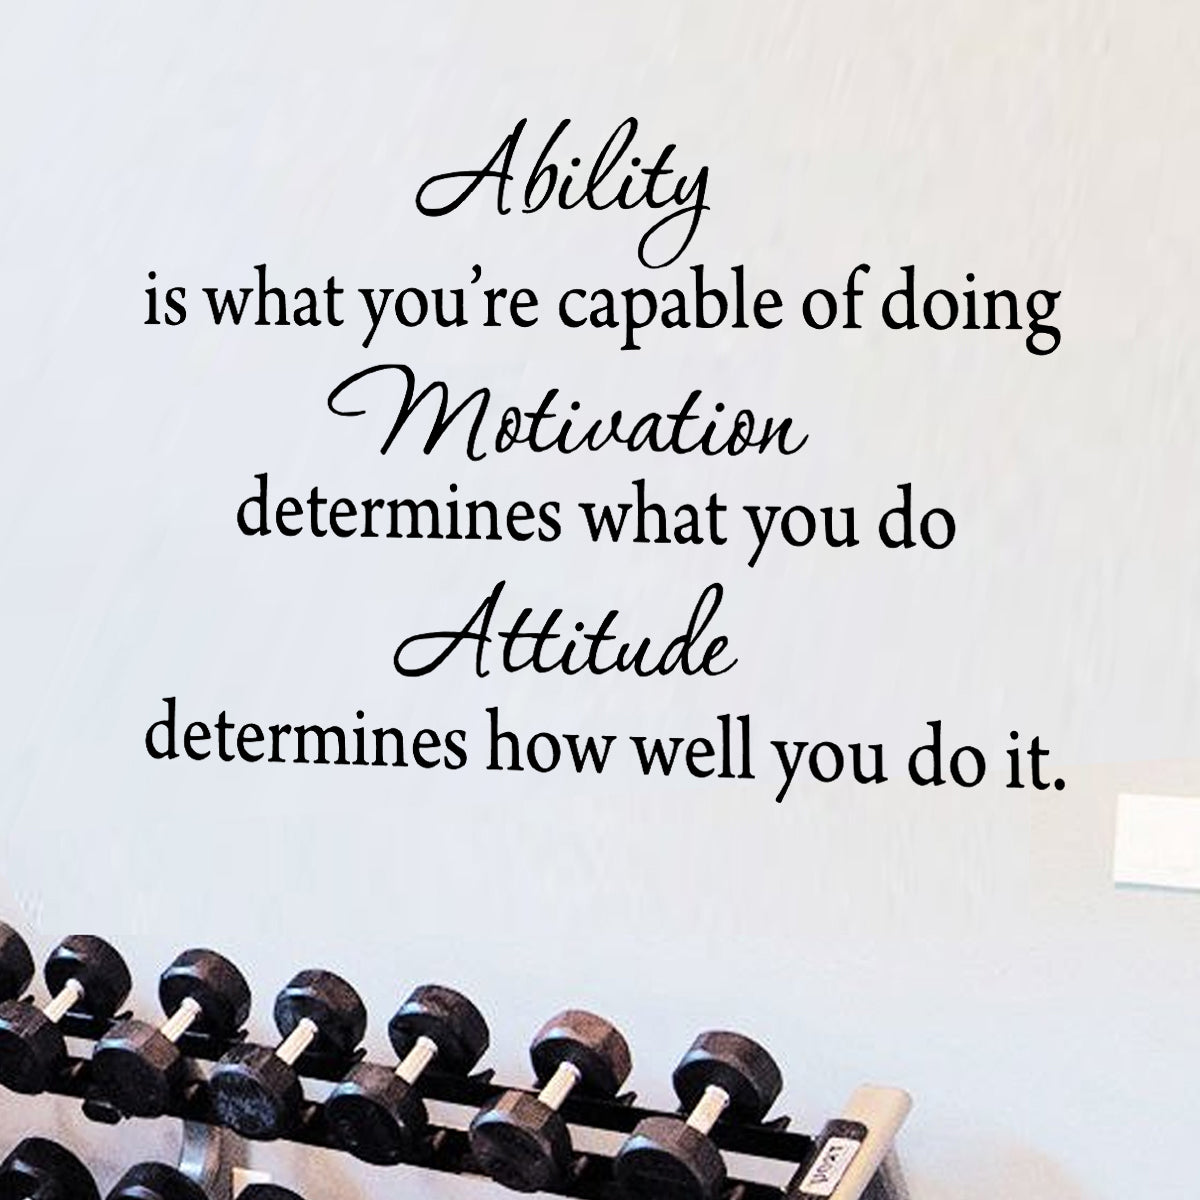 """Ability is What Youre Capable of Doing Inspirational Wall Quotes - 15""""H X 22""""W"""